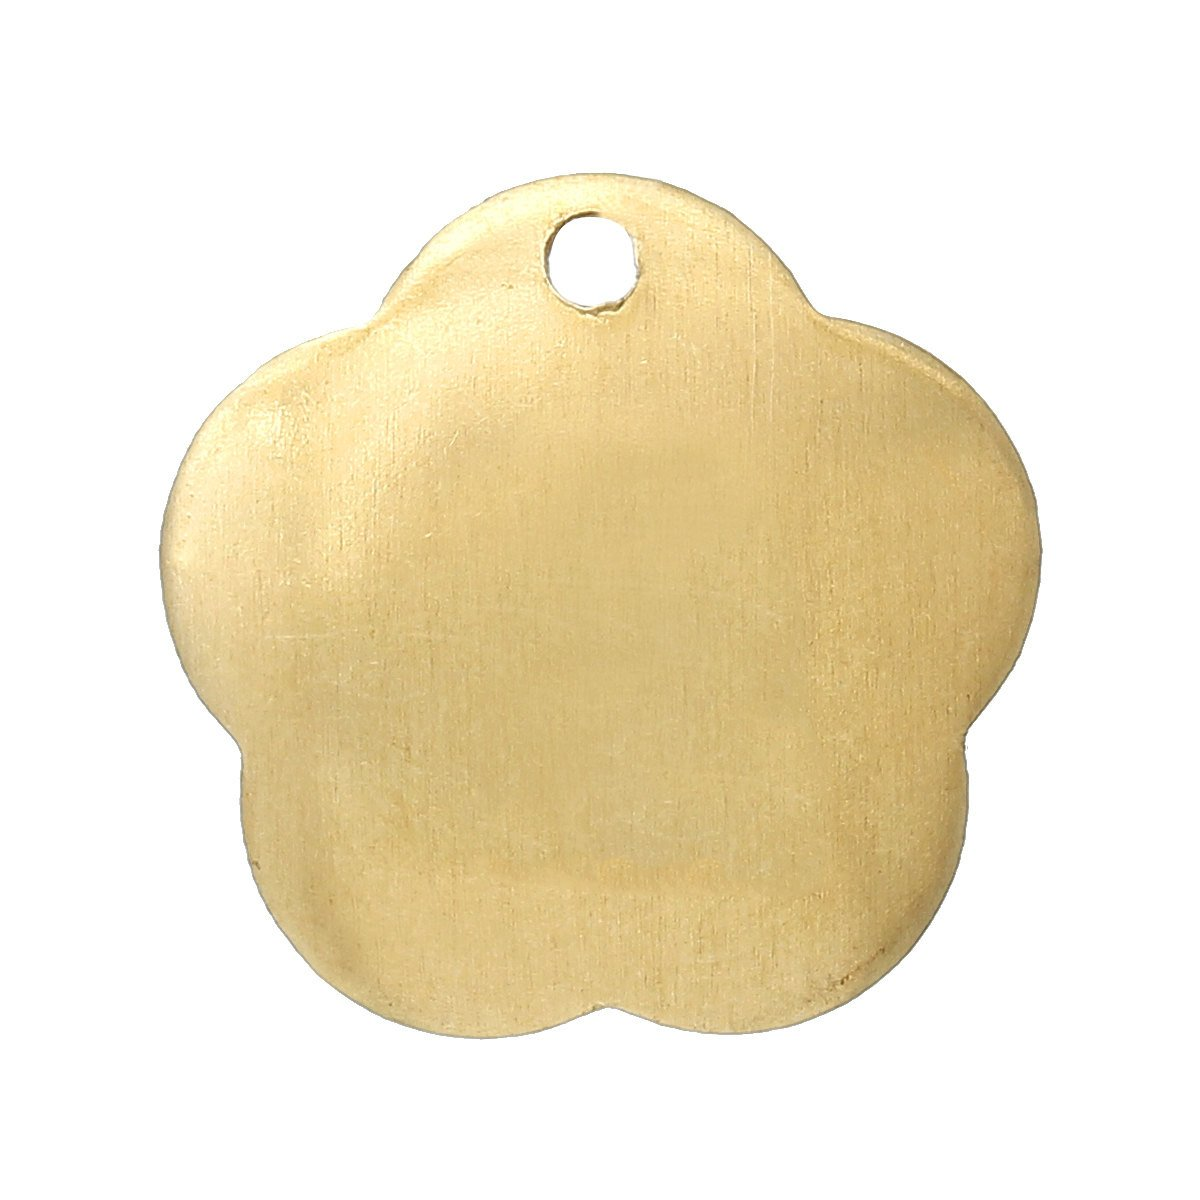 15 Gold Brass Sheet Metal Stamping Blanks Domed Flower Tag 1 Hole 15x14mm 20 Gauge Msb0189 Metal Stamping Stamp Cool Things To Buy